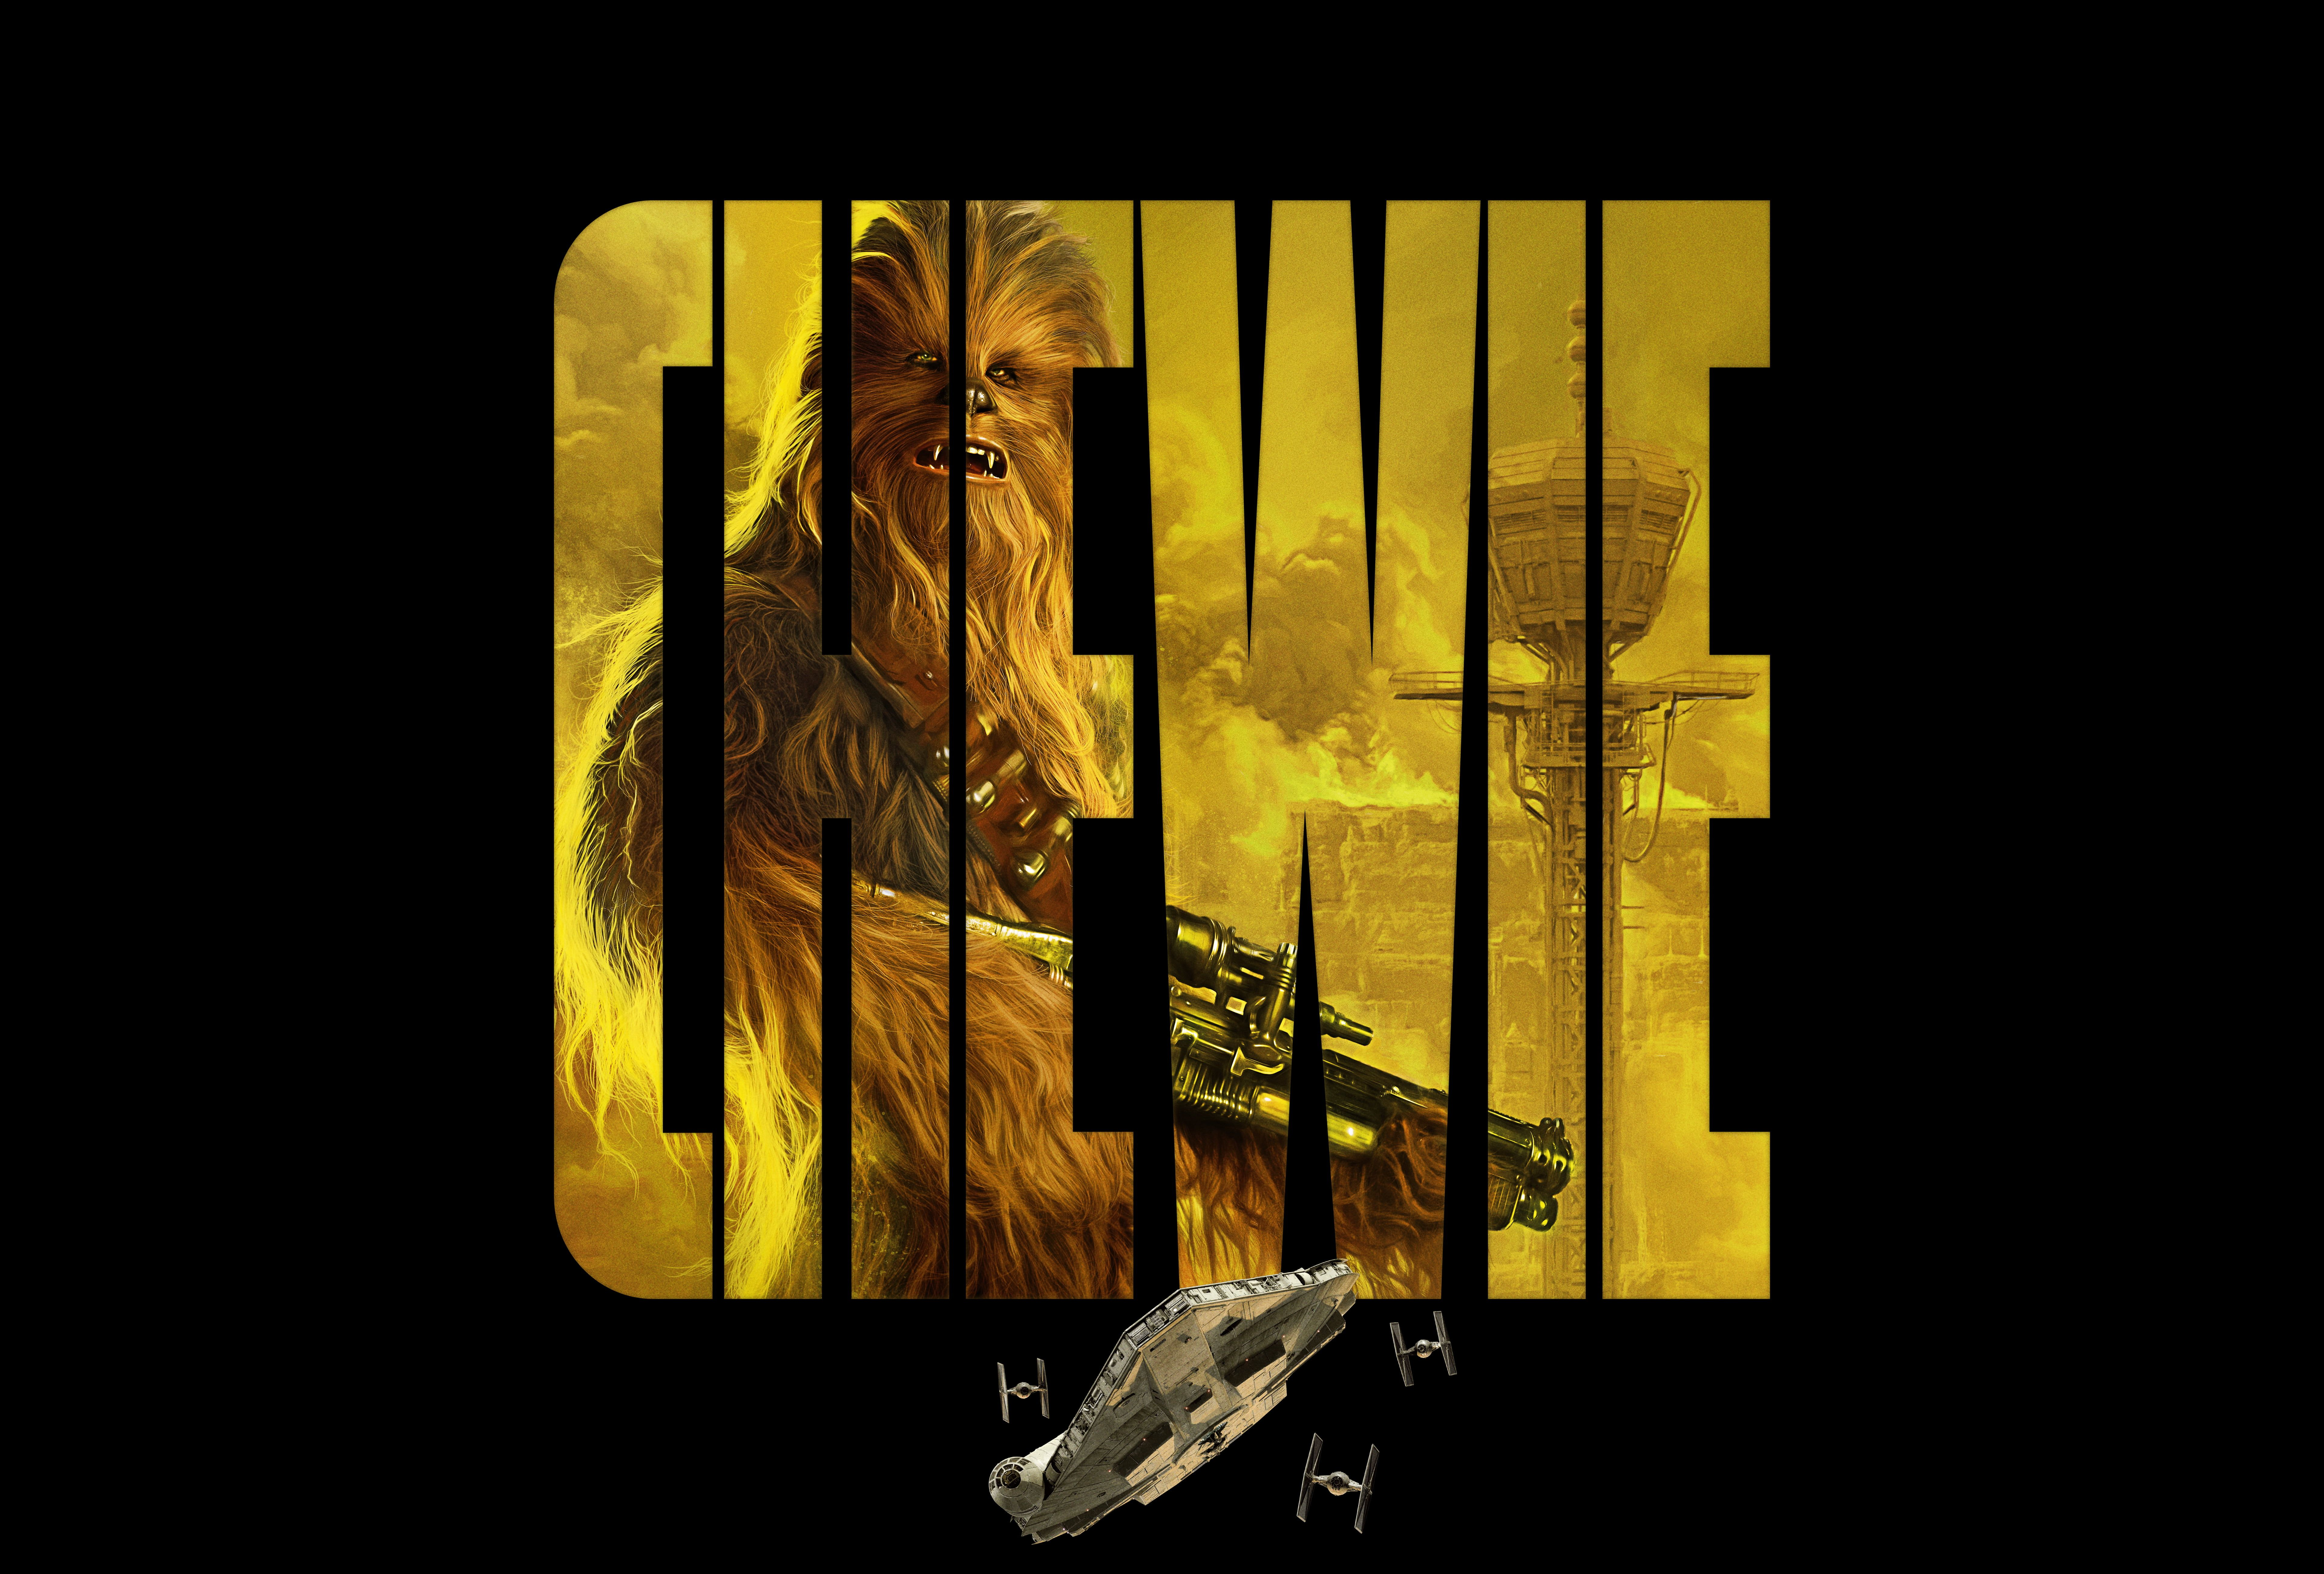 Chewbacca Star Wars Wallpapers Top Free Chewbacca Star Wars Backgrounds Wallpaperaccess